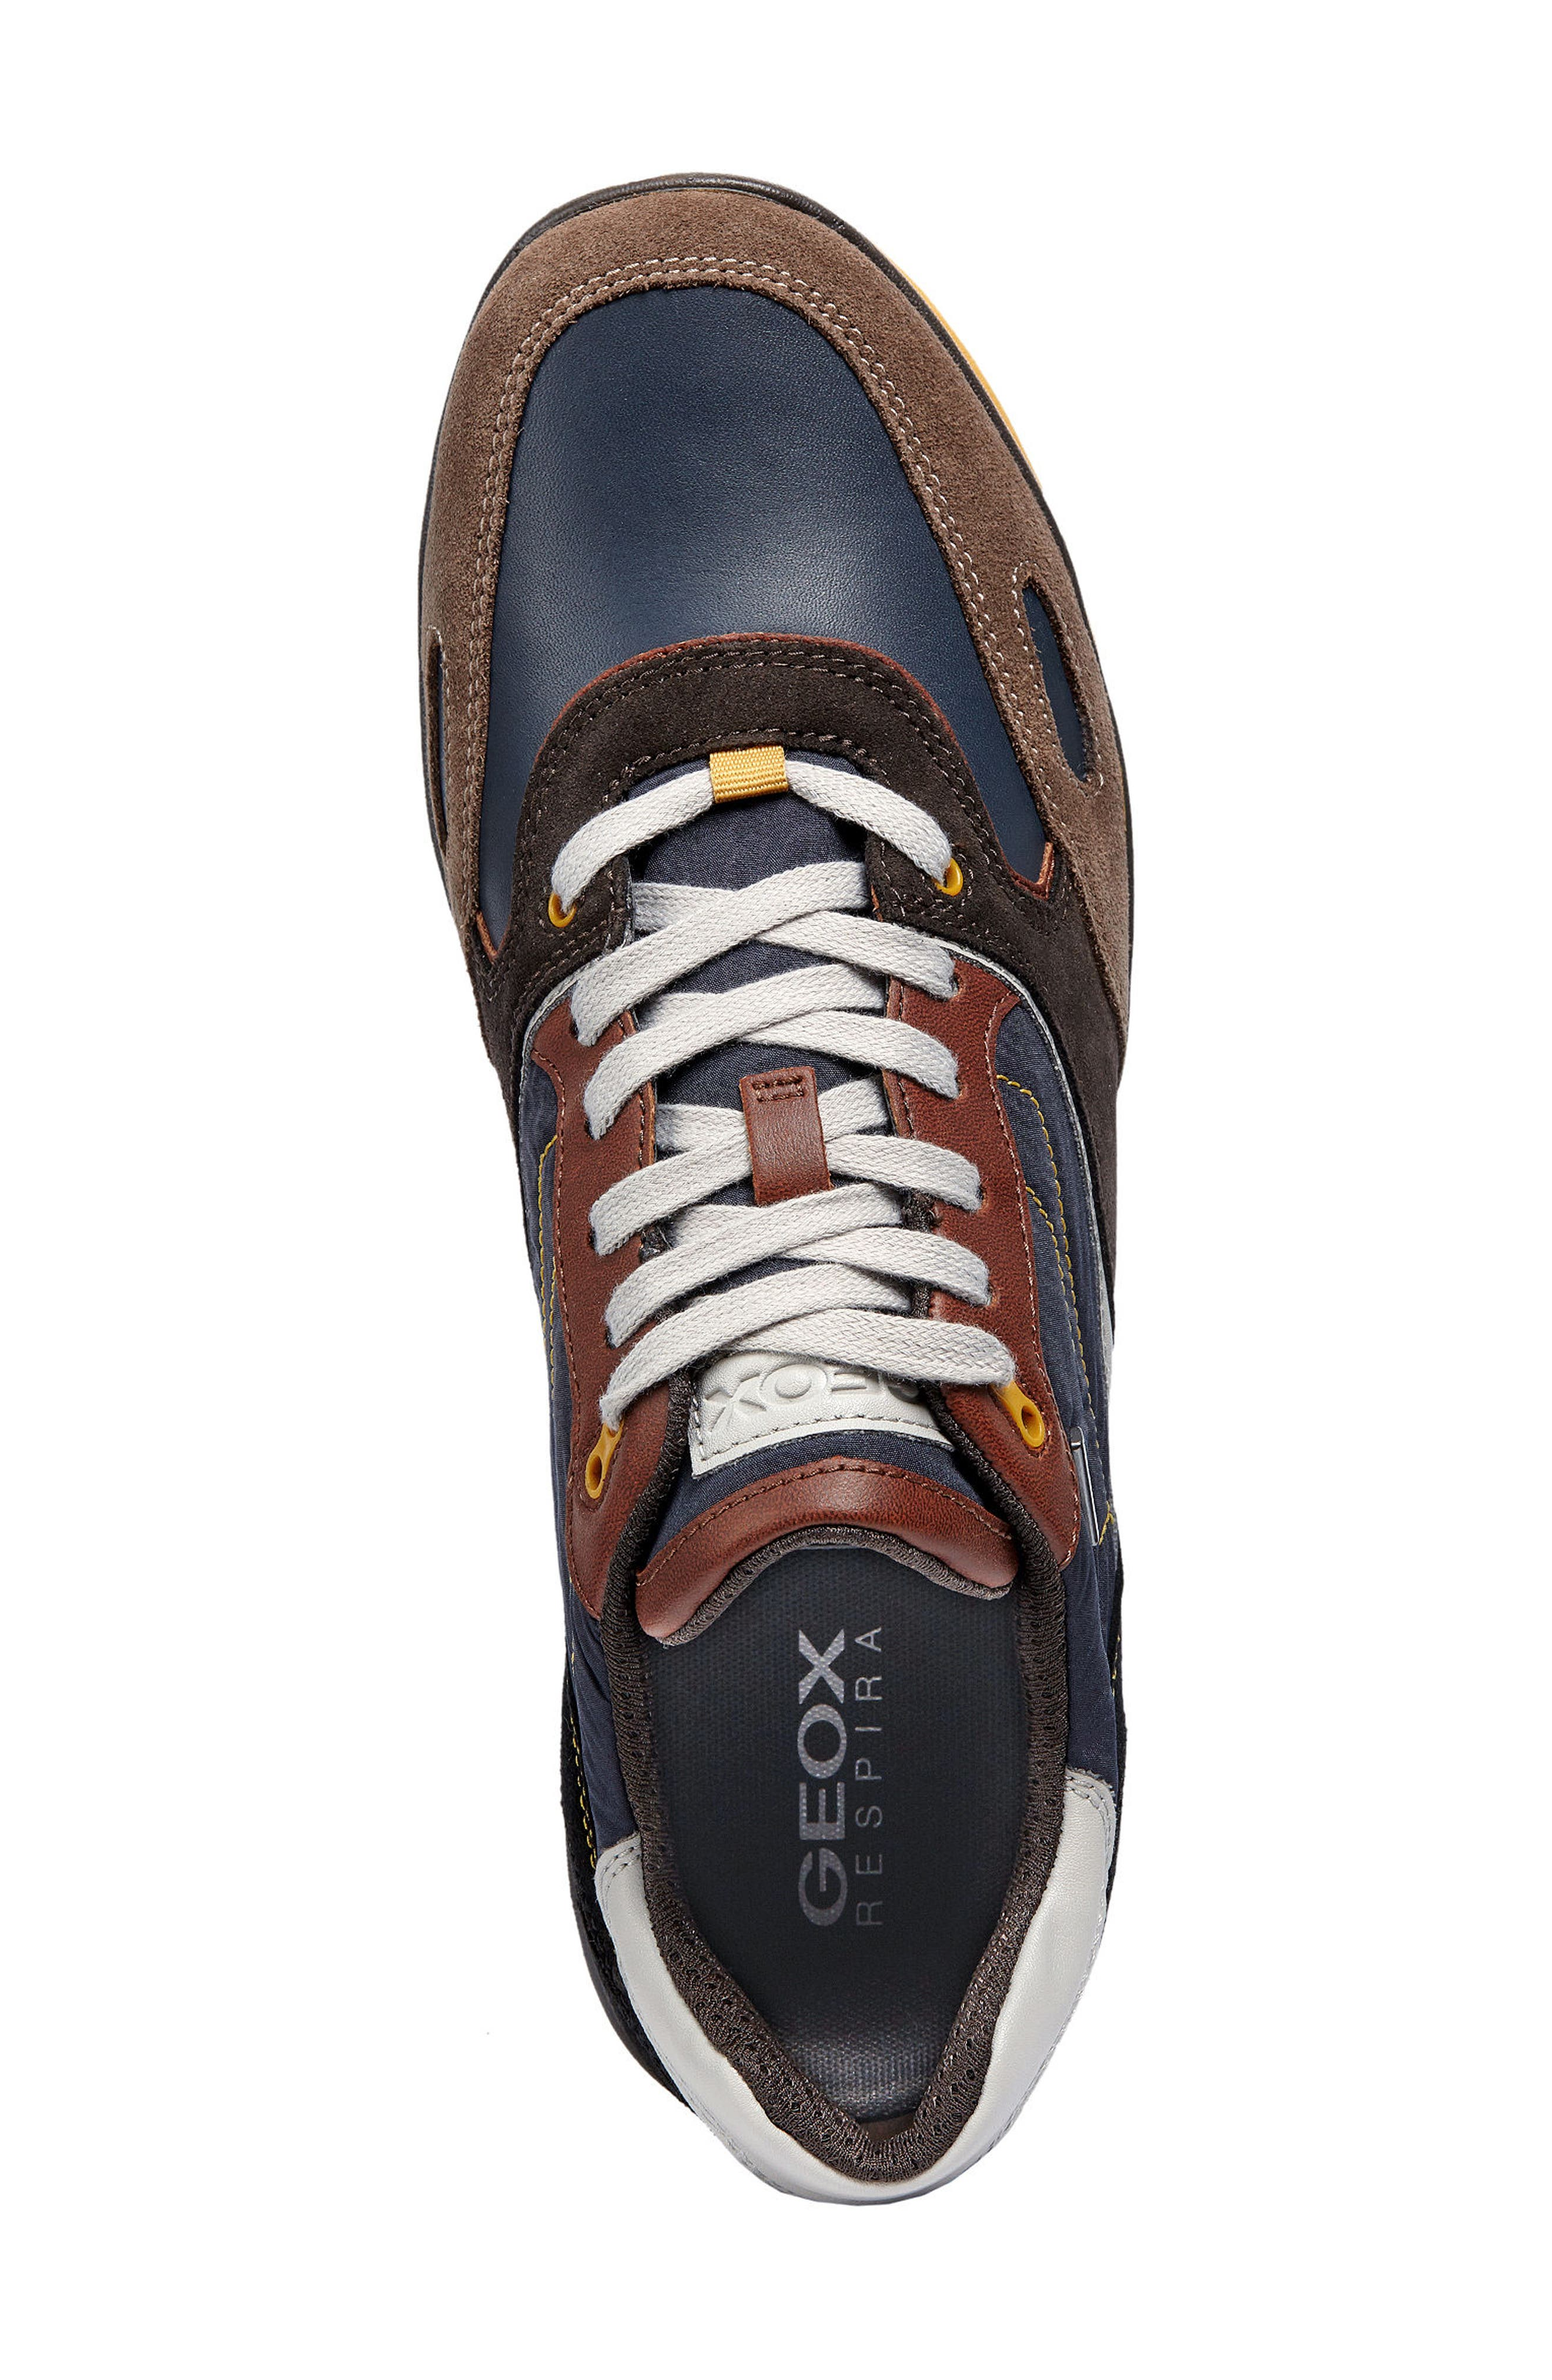 Sandford ABX 1 Waterproof Low Top Sneaker,                             Alternate thumbnail 5, color,                             CHOCOLATE/ NAVY LEATHER